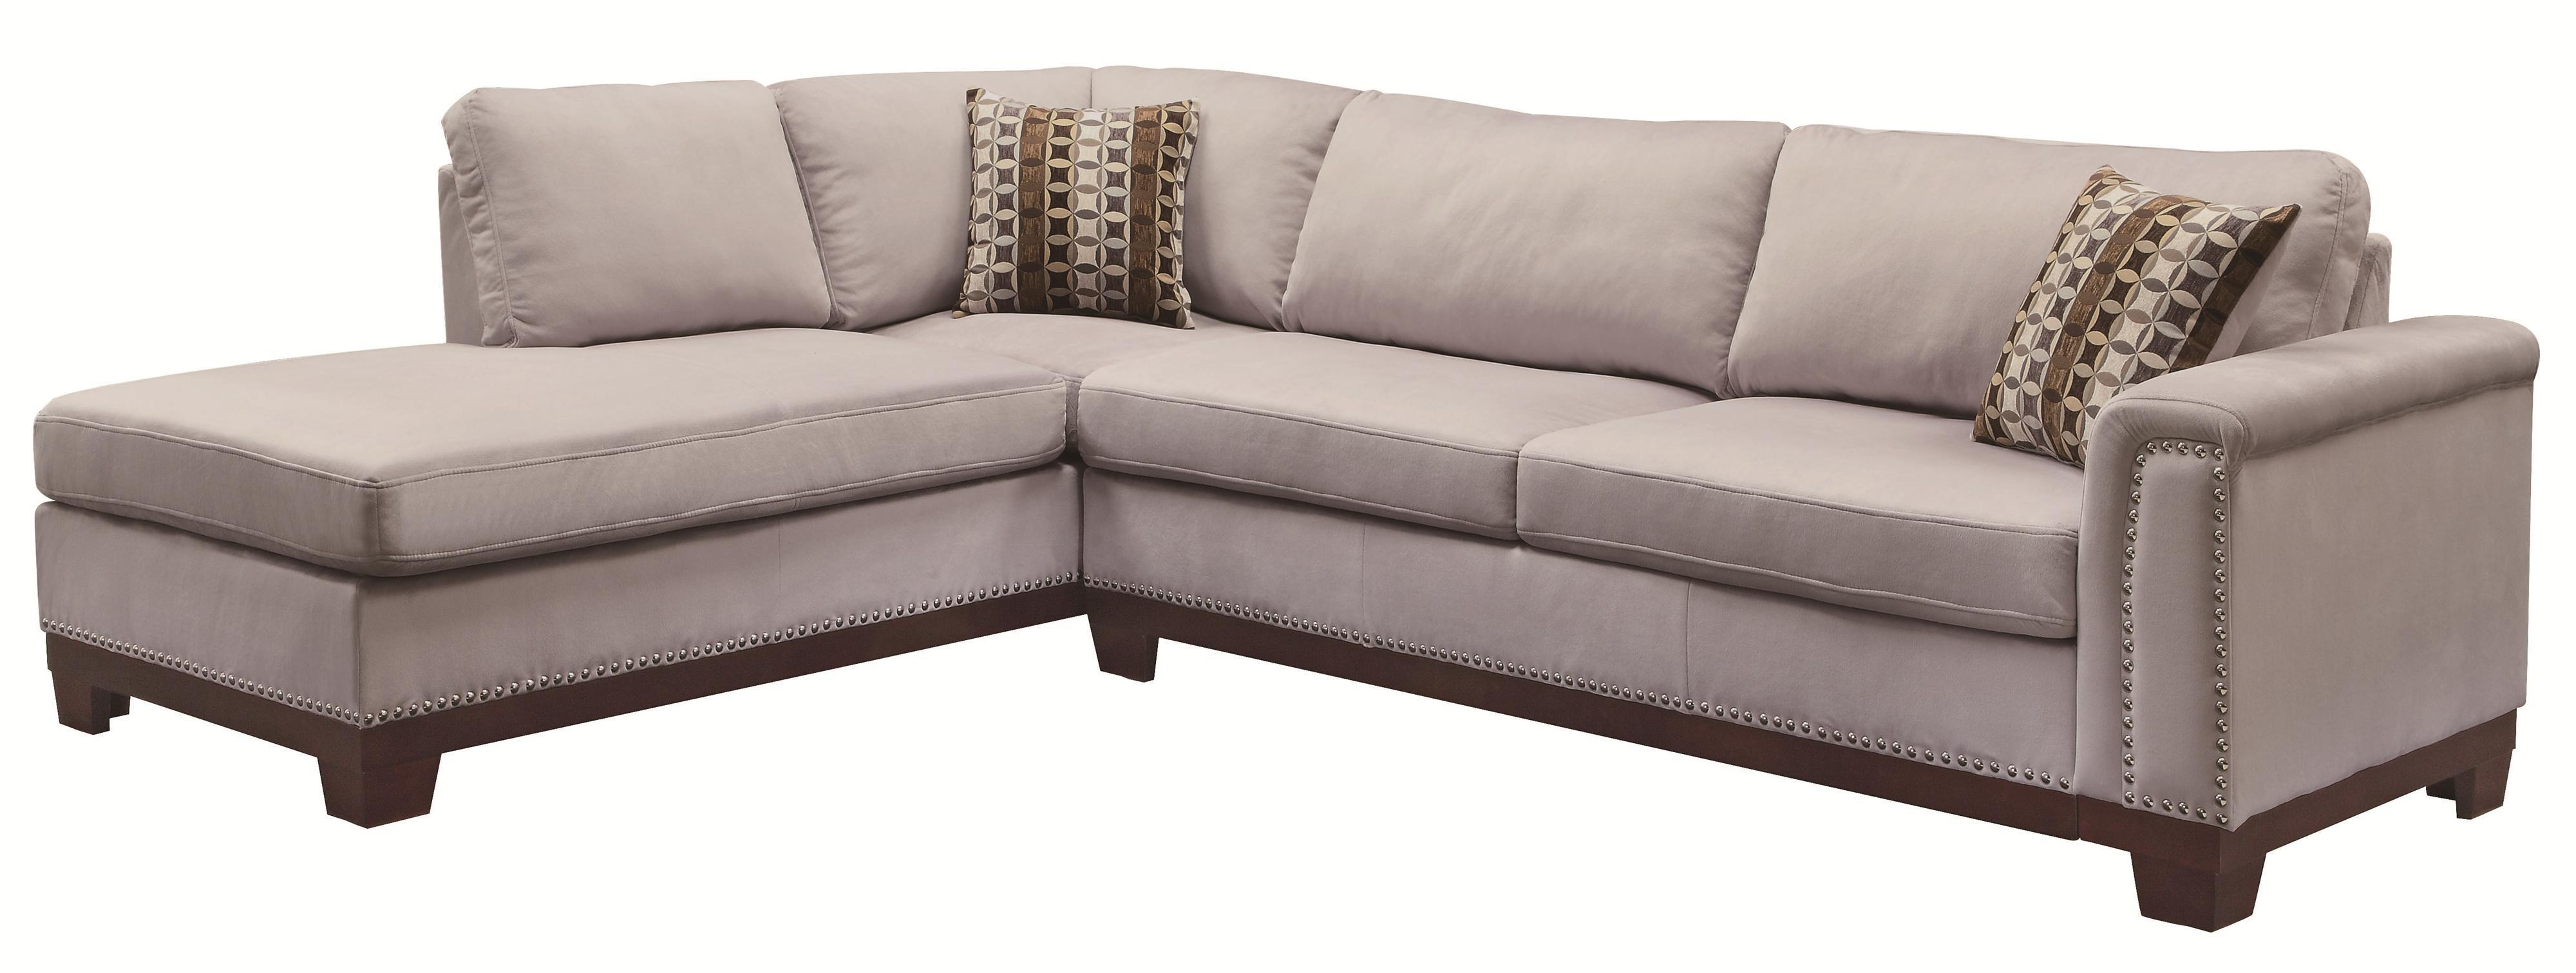 Sofas Center : Gray Sectional Sofa With Chaise Fantastic Photos With Small Grey Sofas (Image 16 of 20)